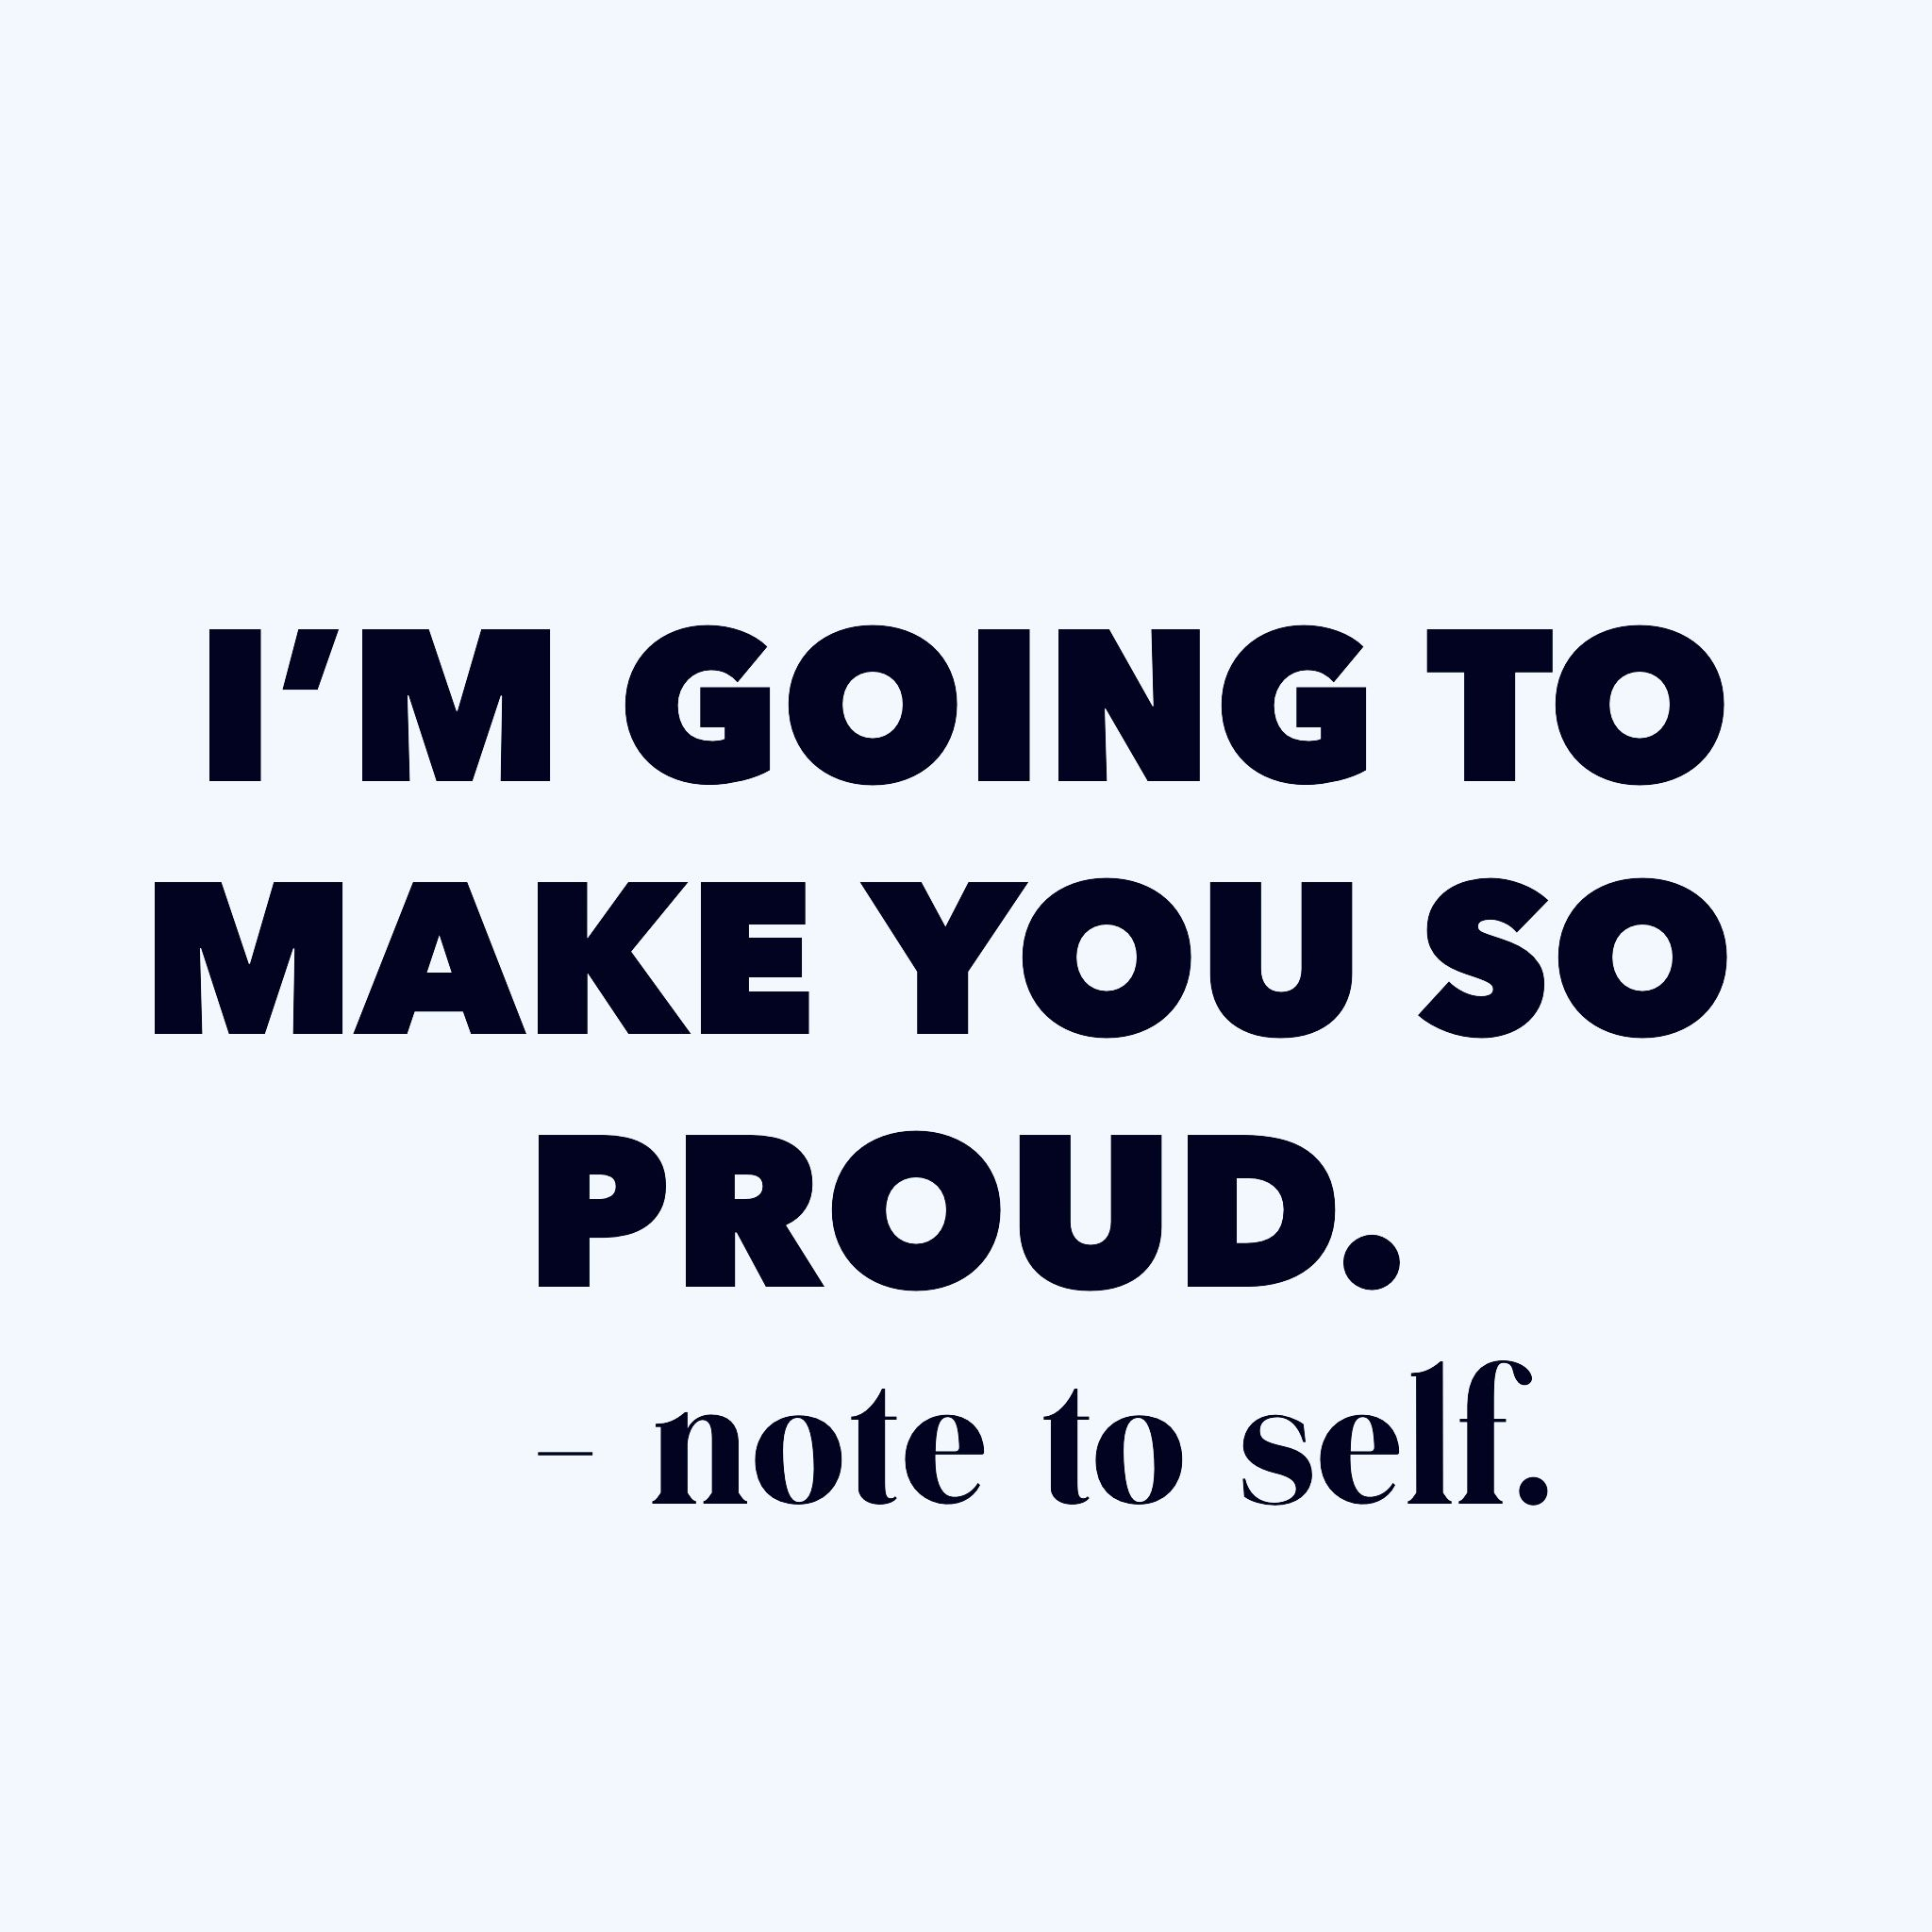 I M Going To Make You Proud Proud Quotes Proud Of Myself Quotes Encouragement Quotes